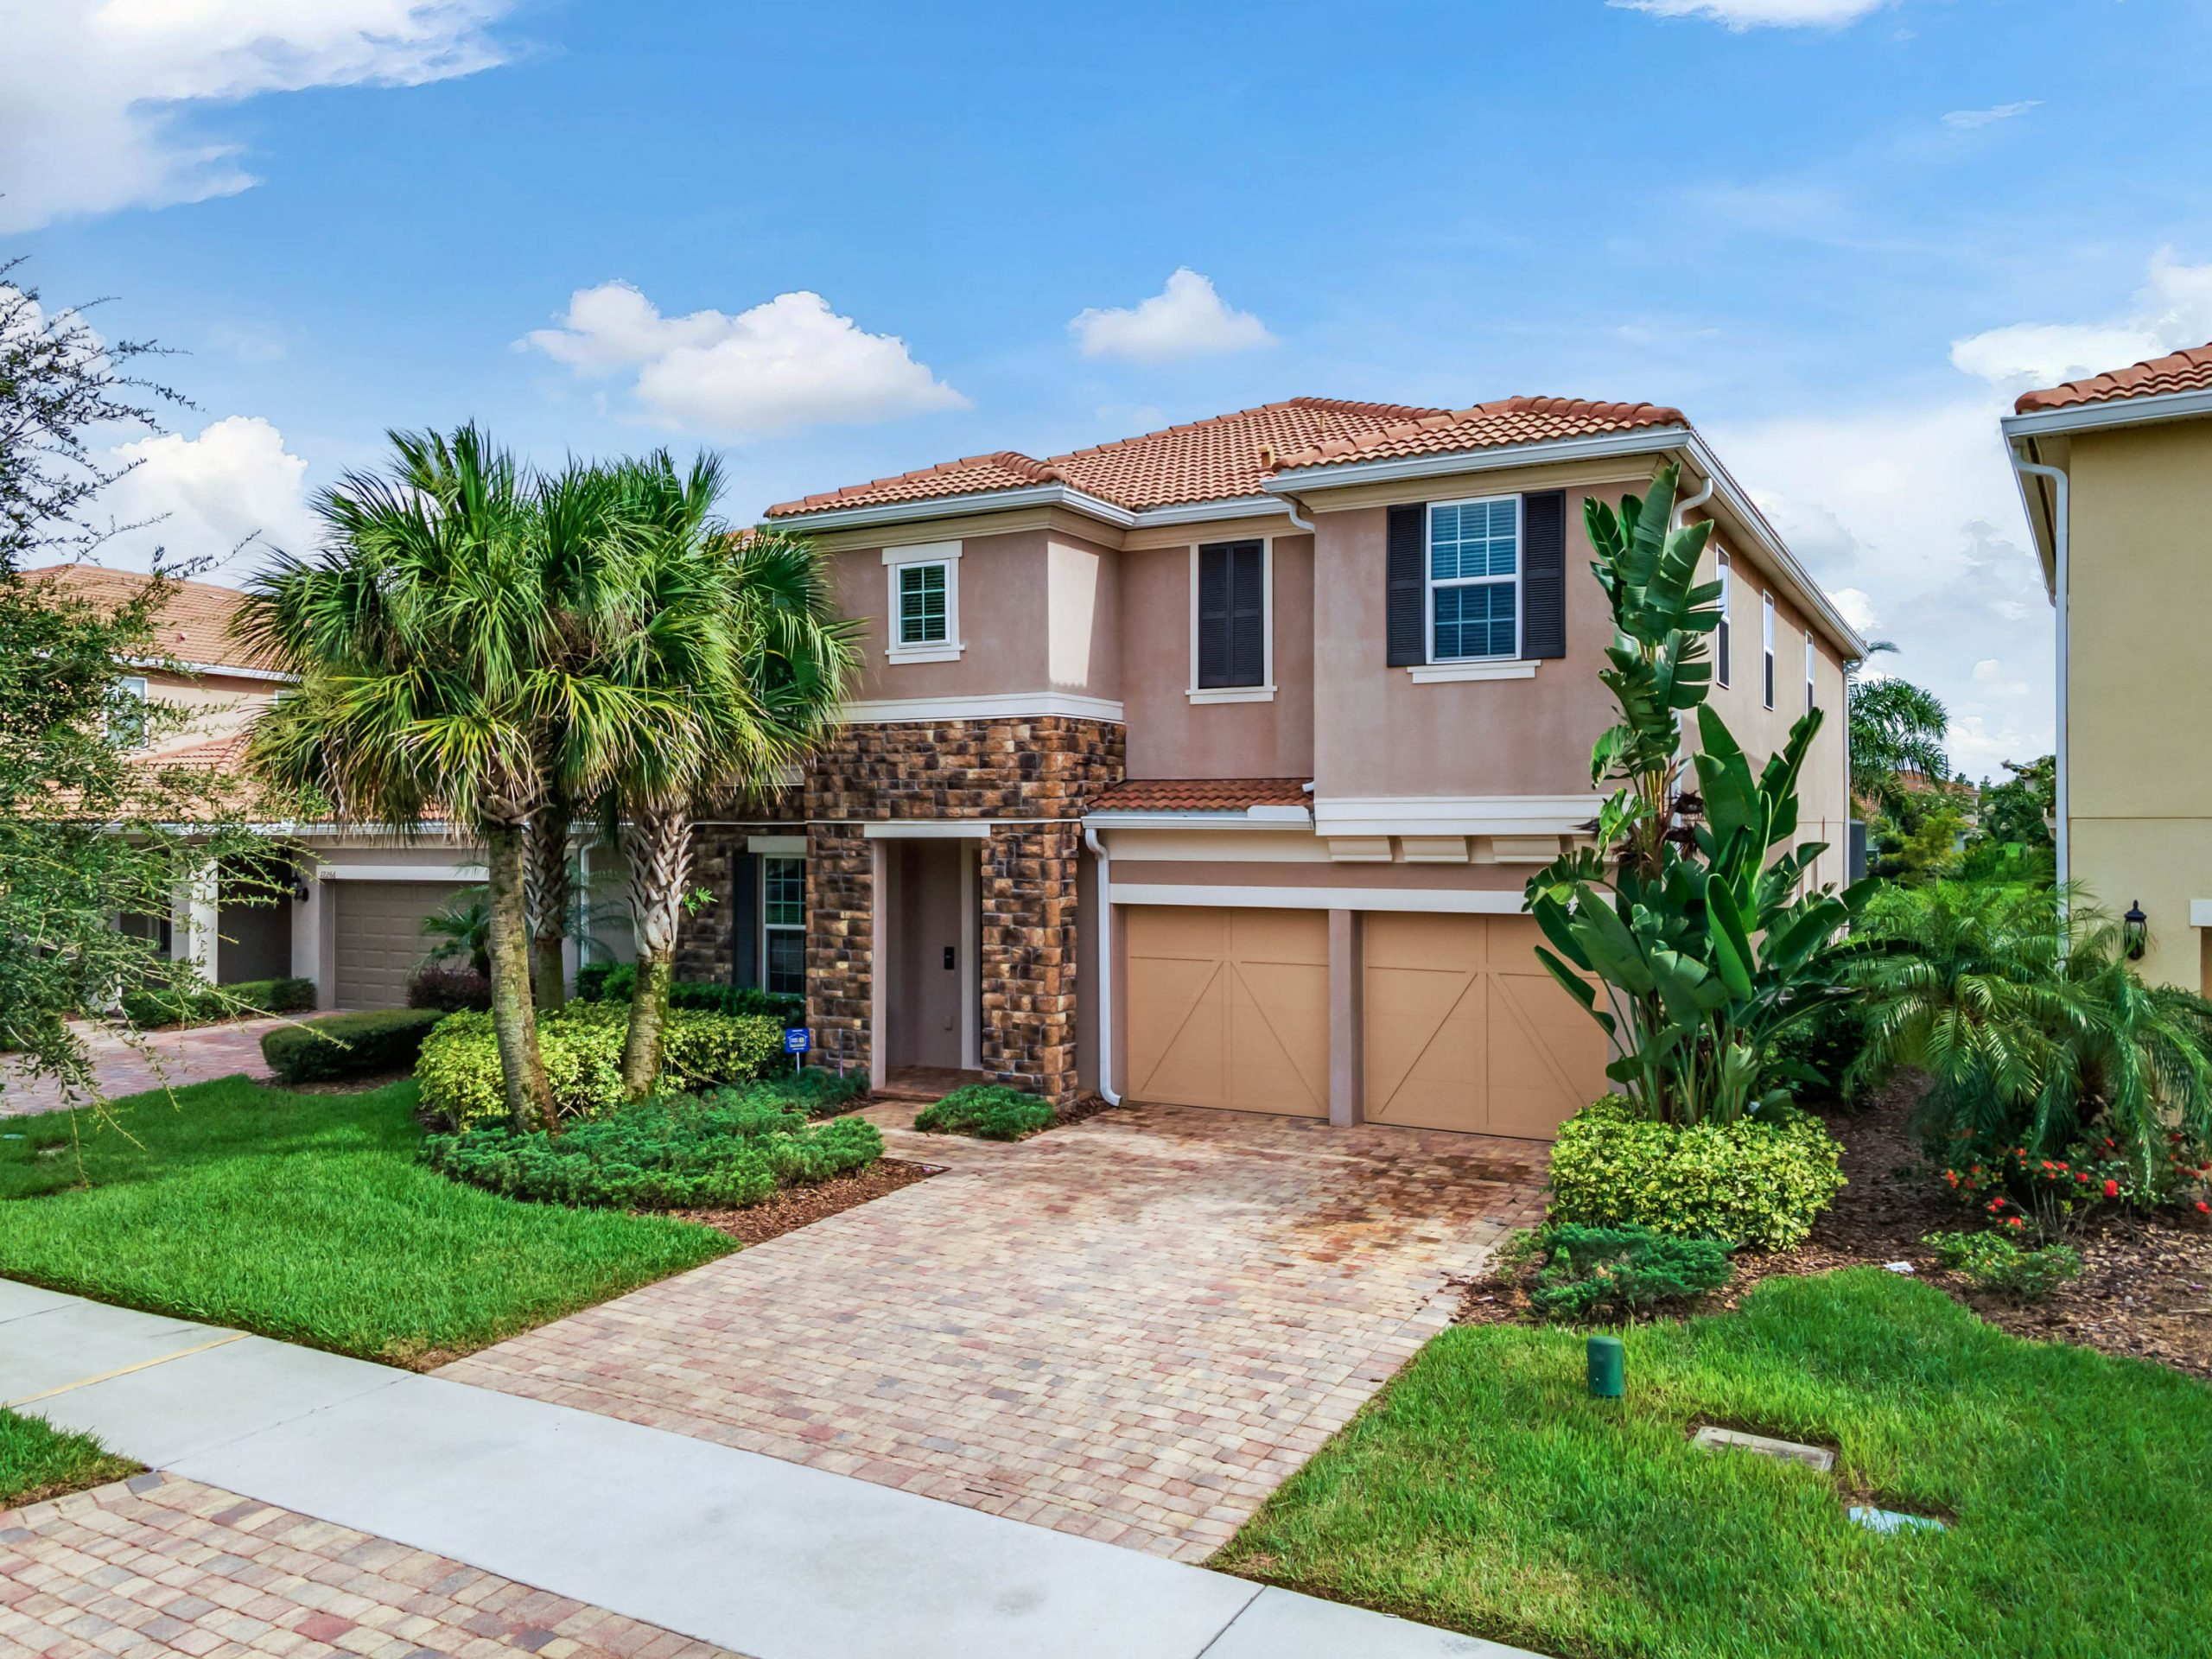 4000 Sqft Home Hits the Market in the Heart of Lake Nona